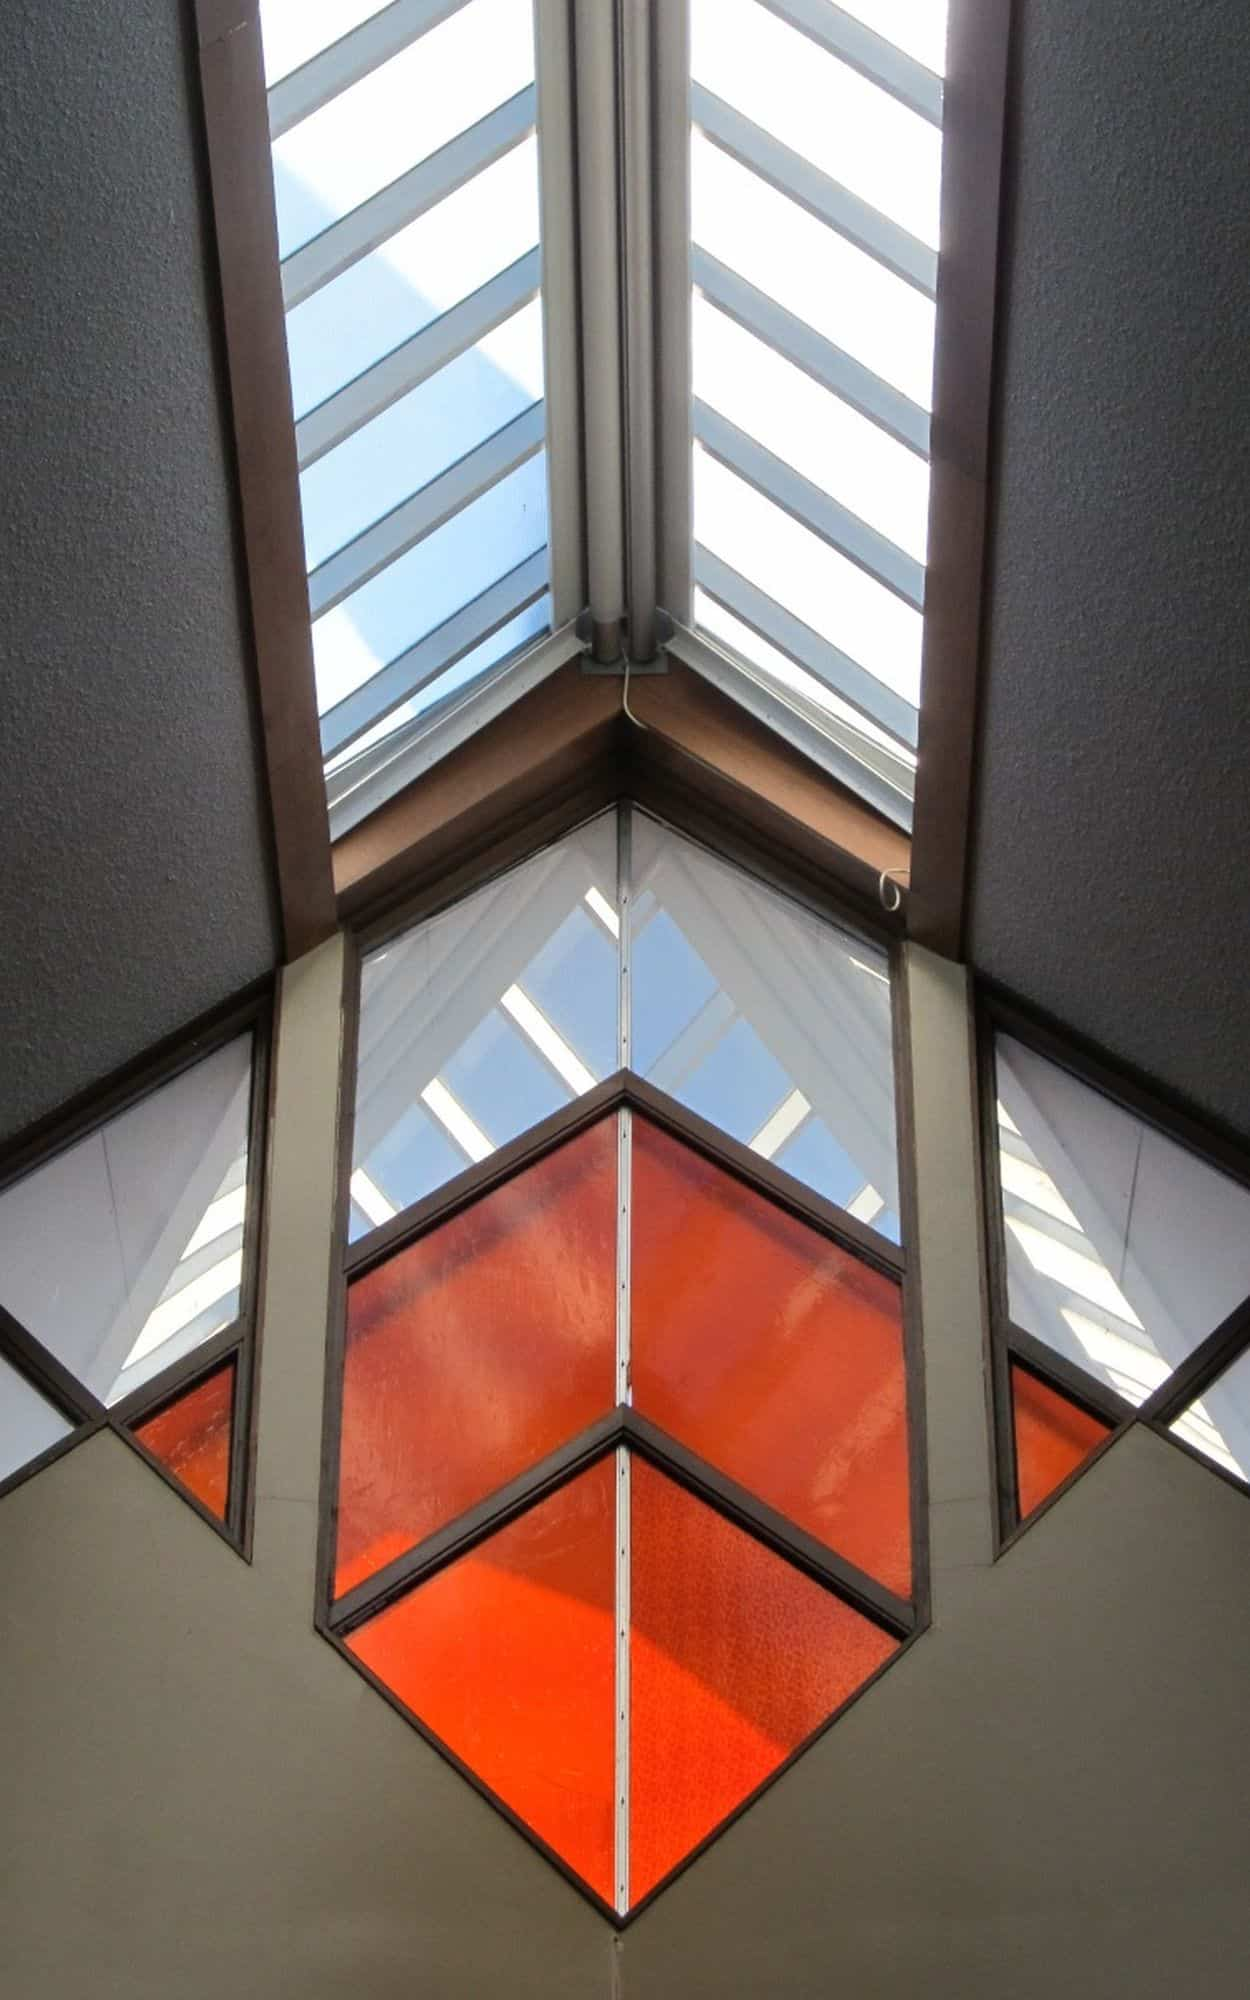 Skylight and stained glass front windows